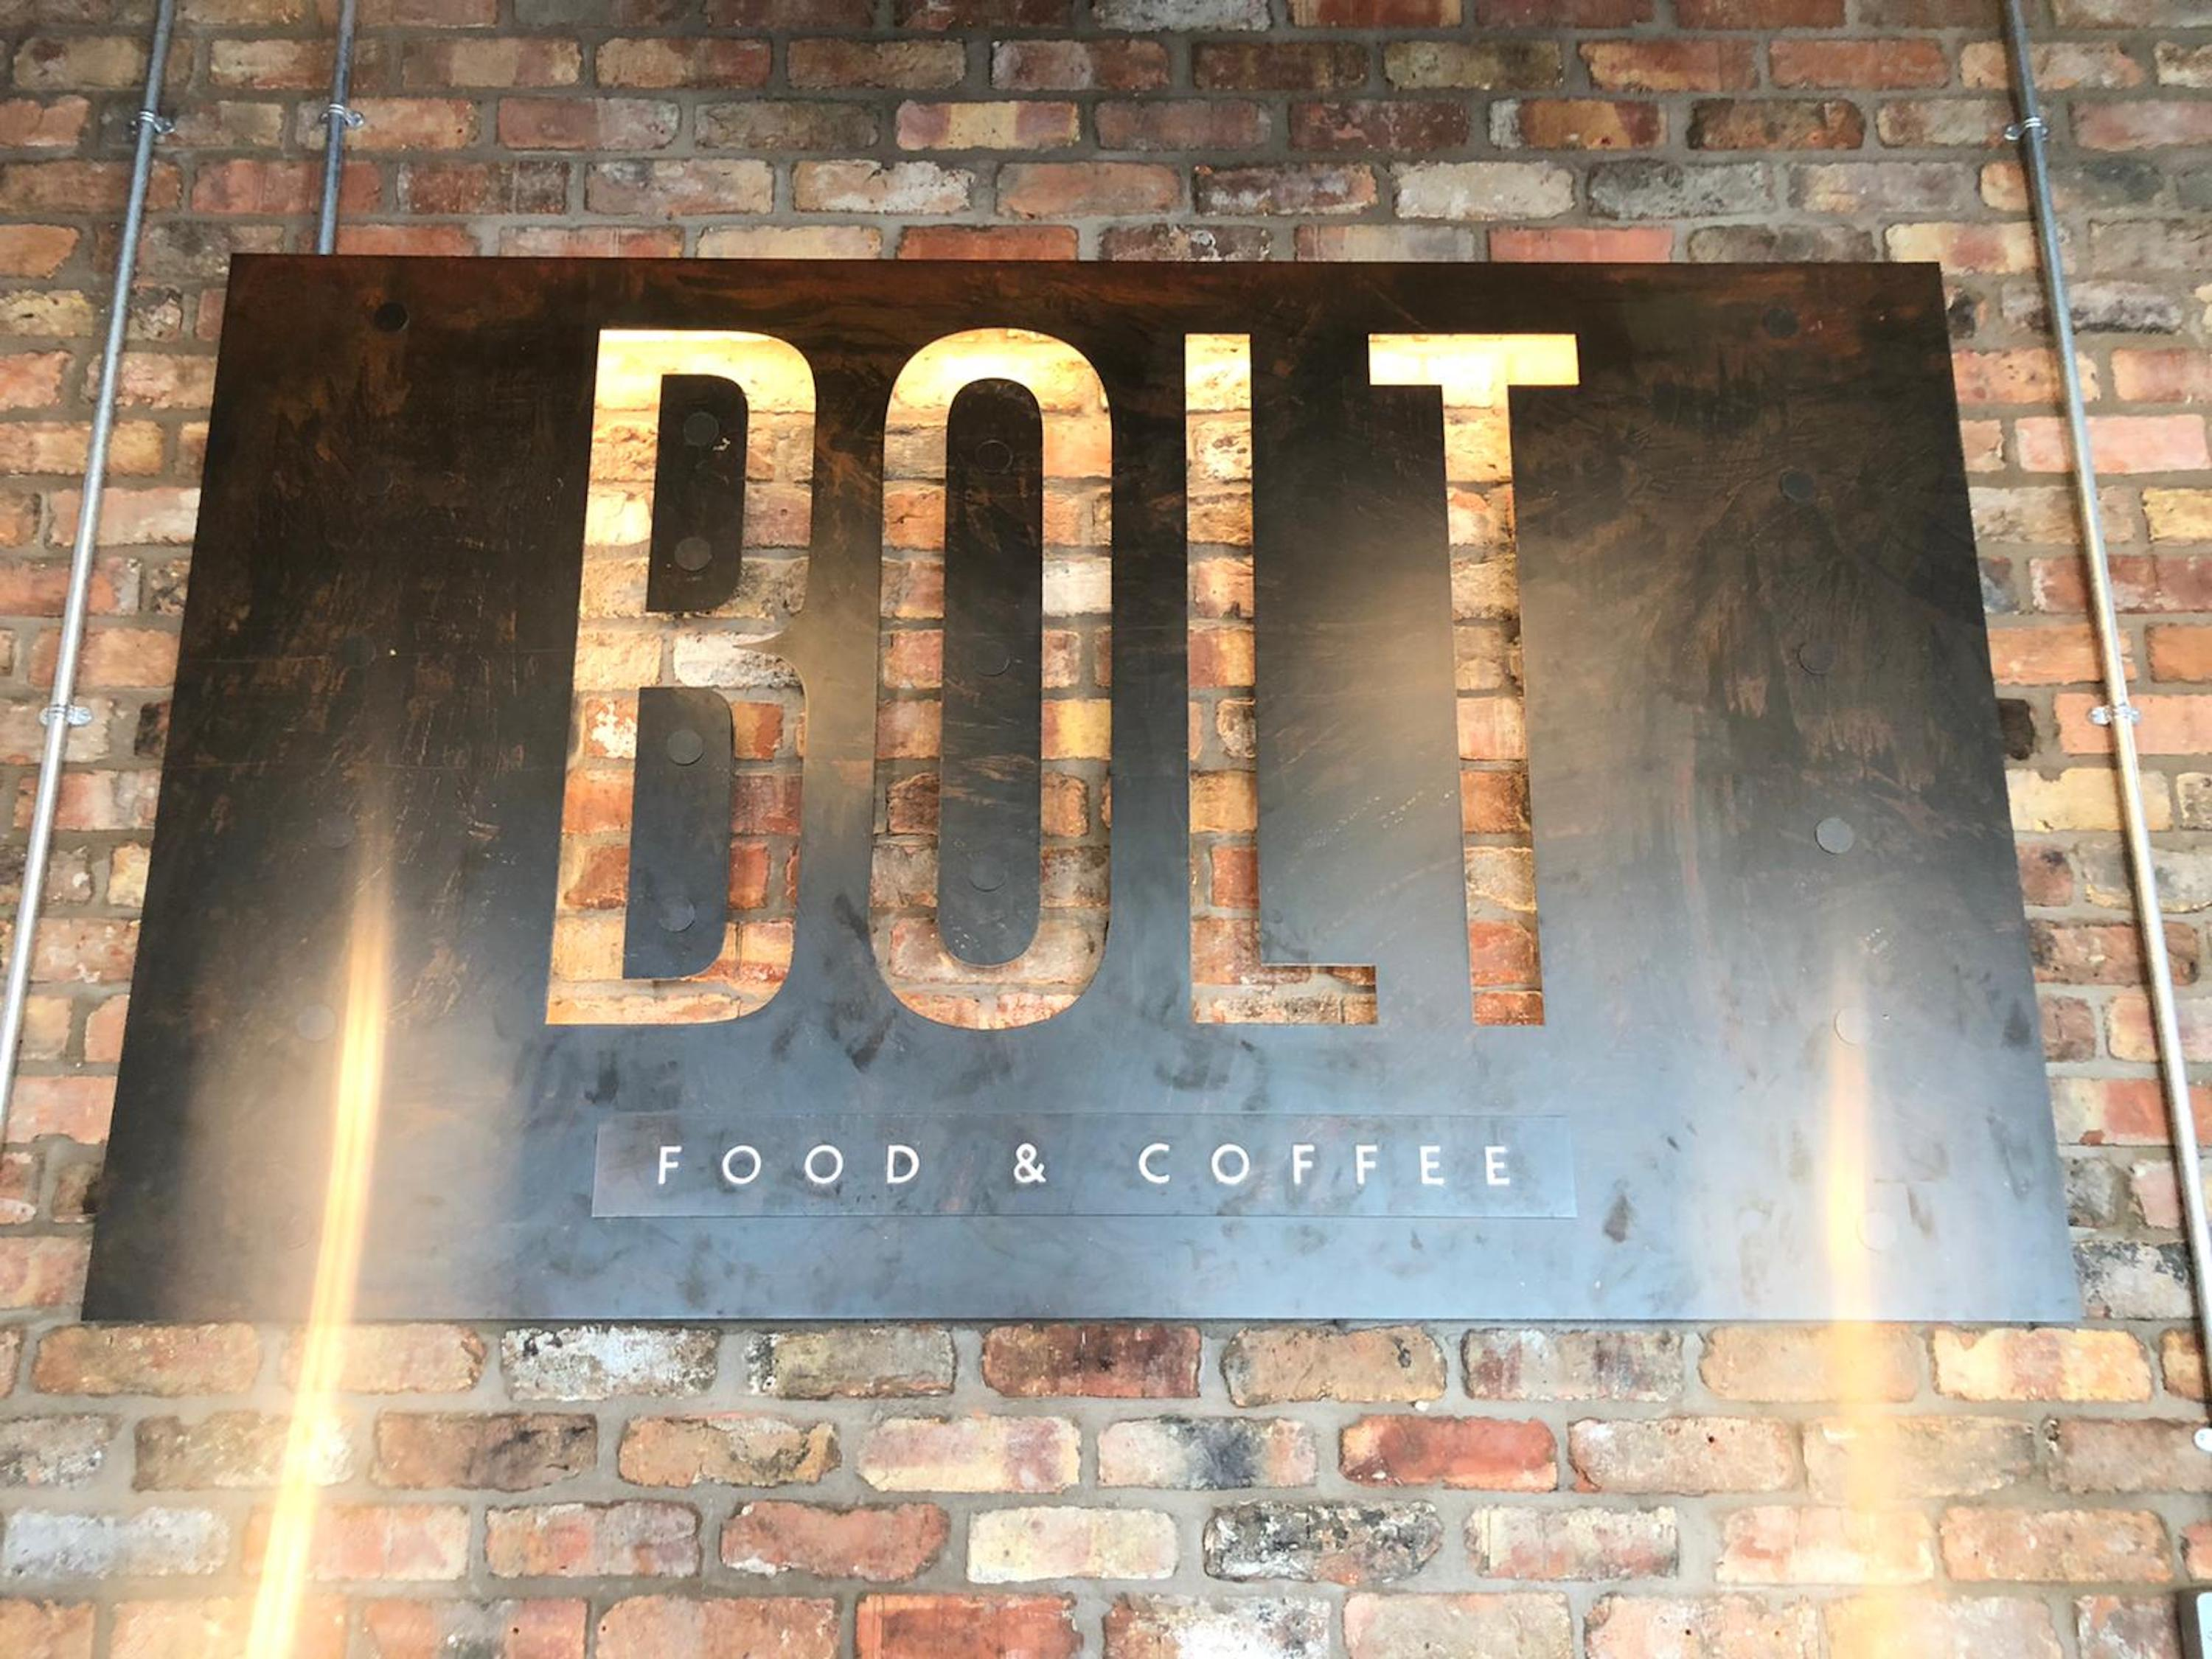 Charles Hurst branches out with new Belfast 'BOLT' café